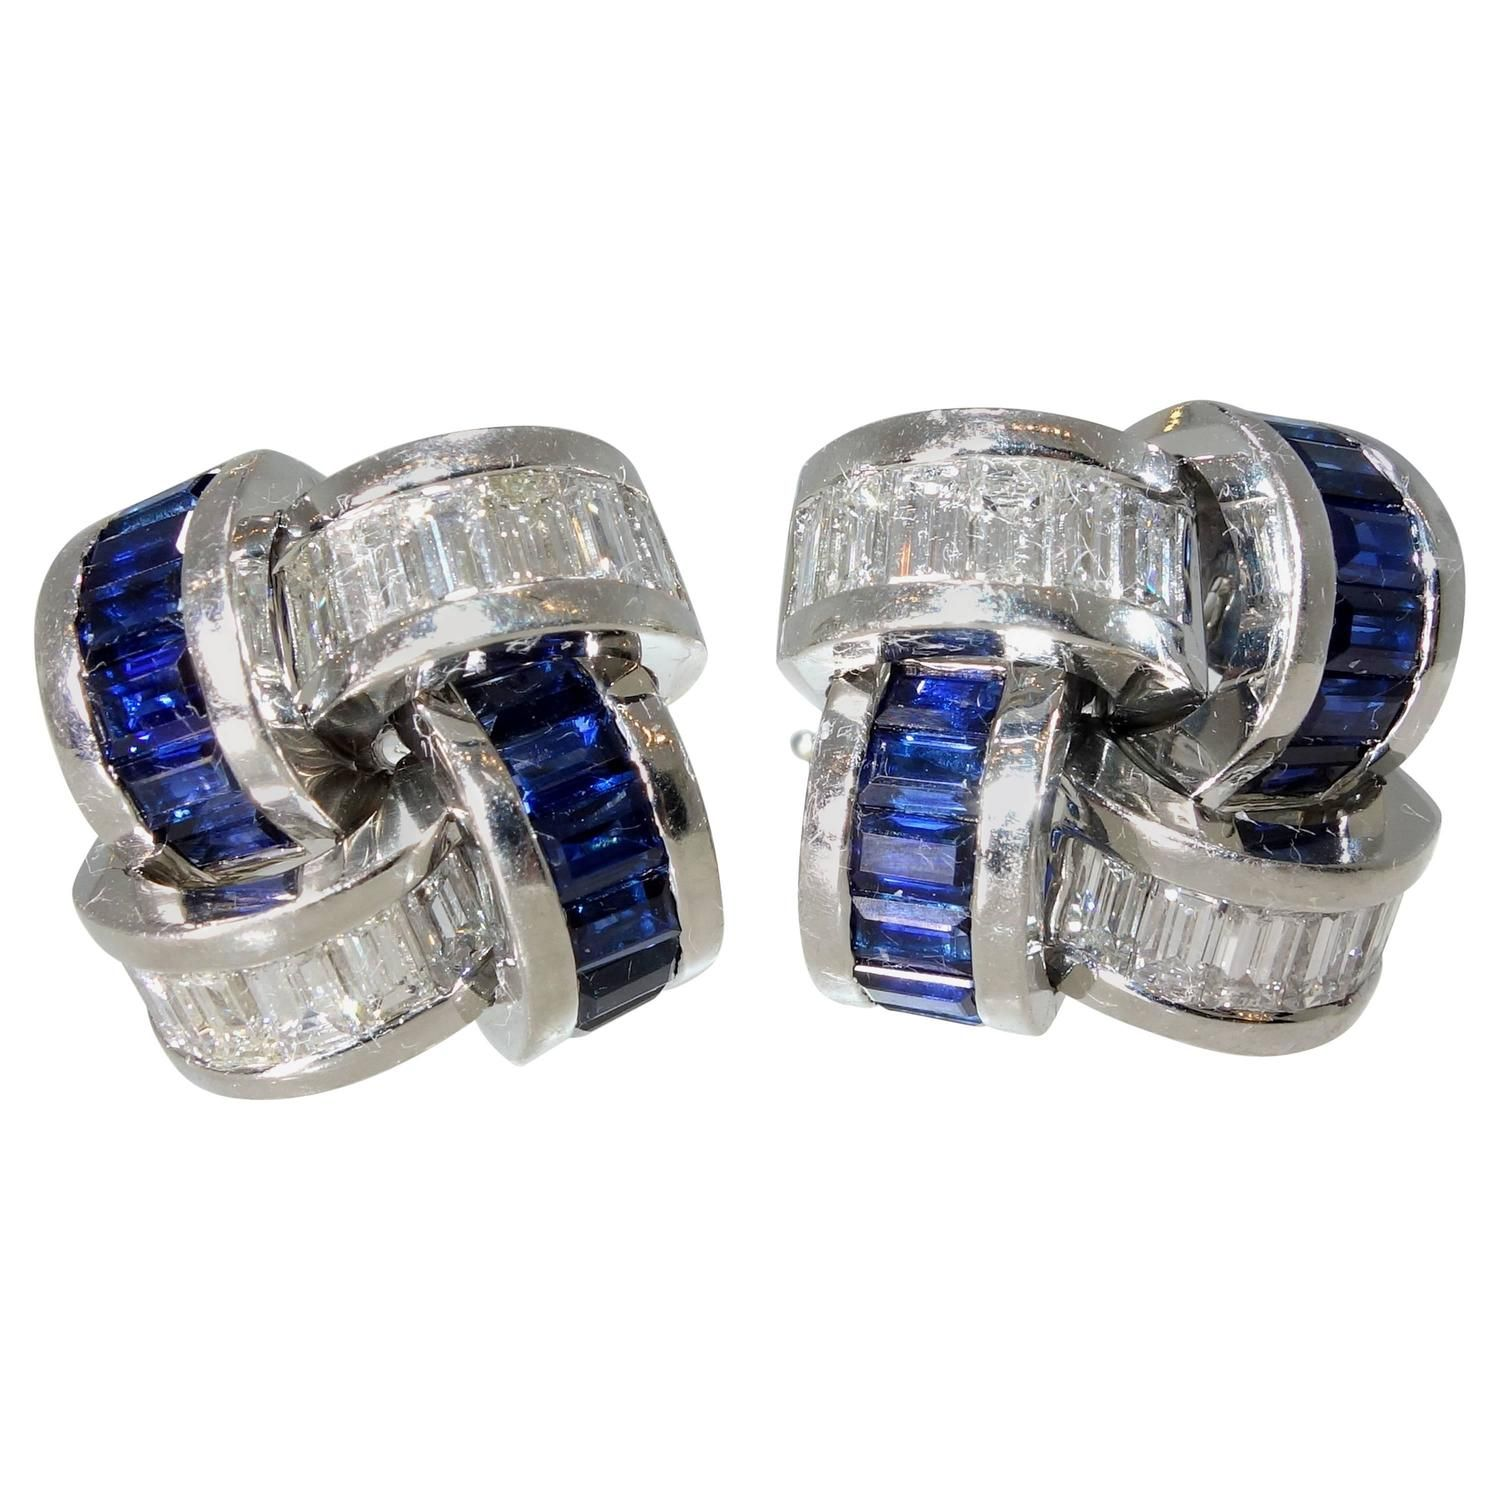 Asprey Sapphire Diamond Platinum Earrings   From a unique collection of vintage more earrings at https://www.1stdibs.com/jewelry/earrings/more-earrings/